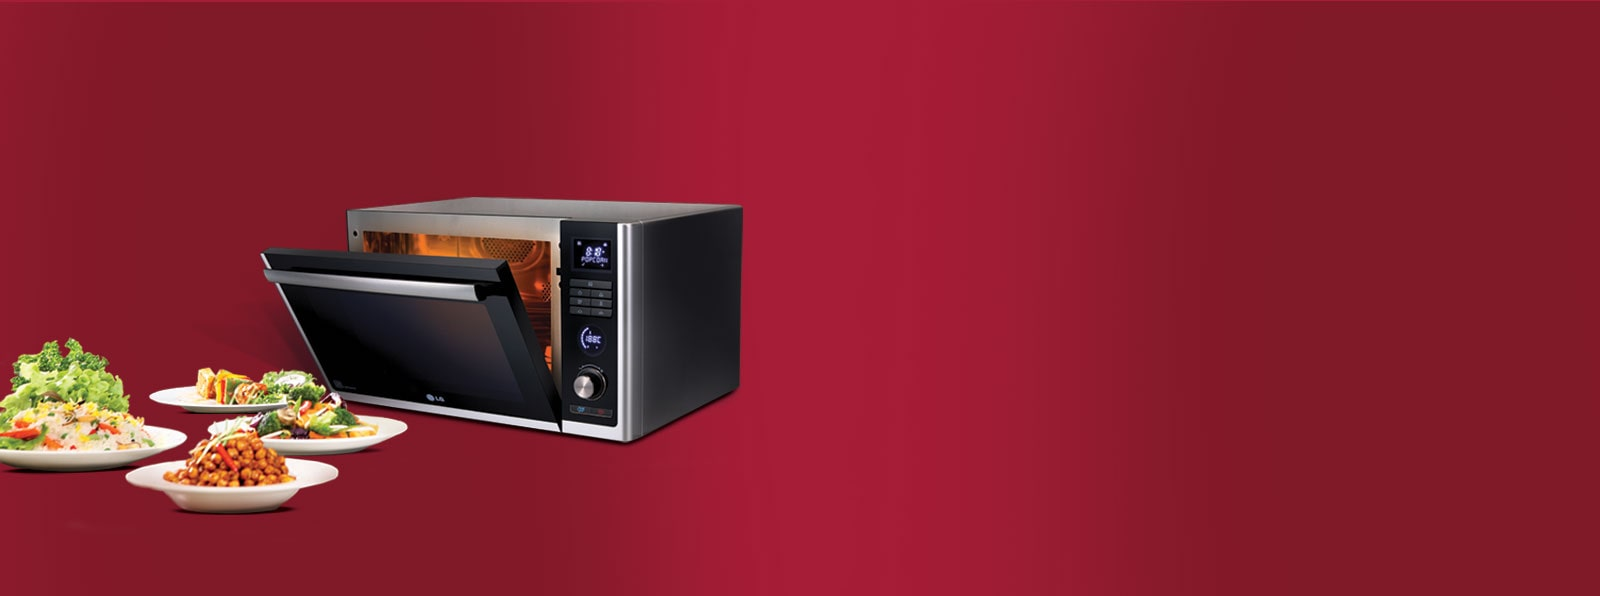 Lg Mc2146bv Convection Microwave Oven India